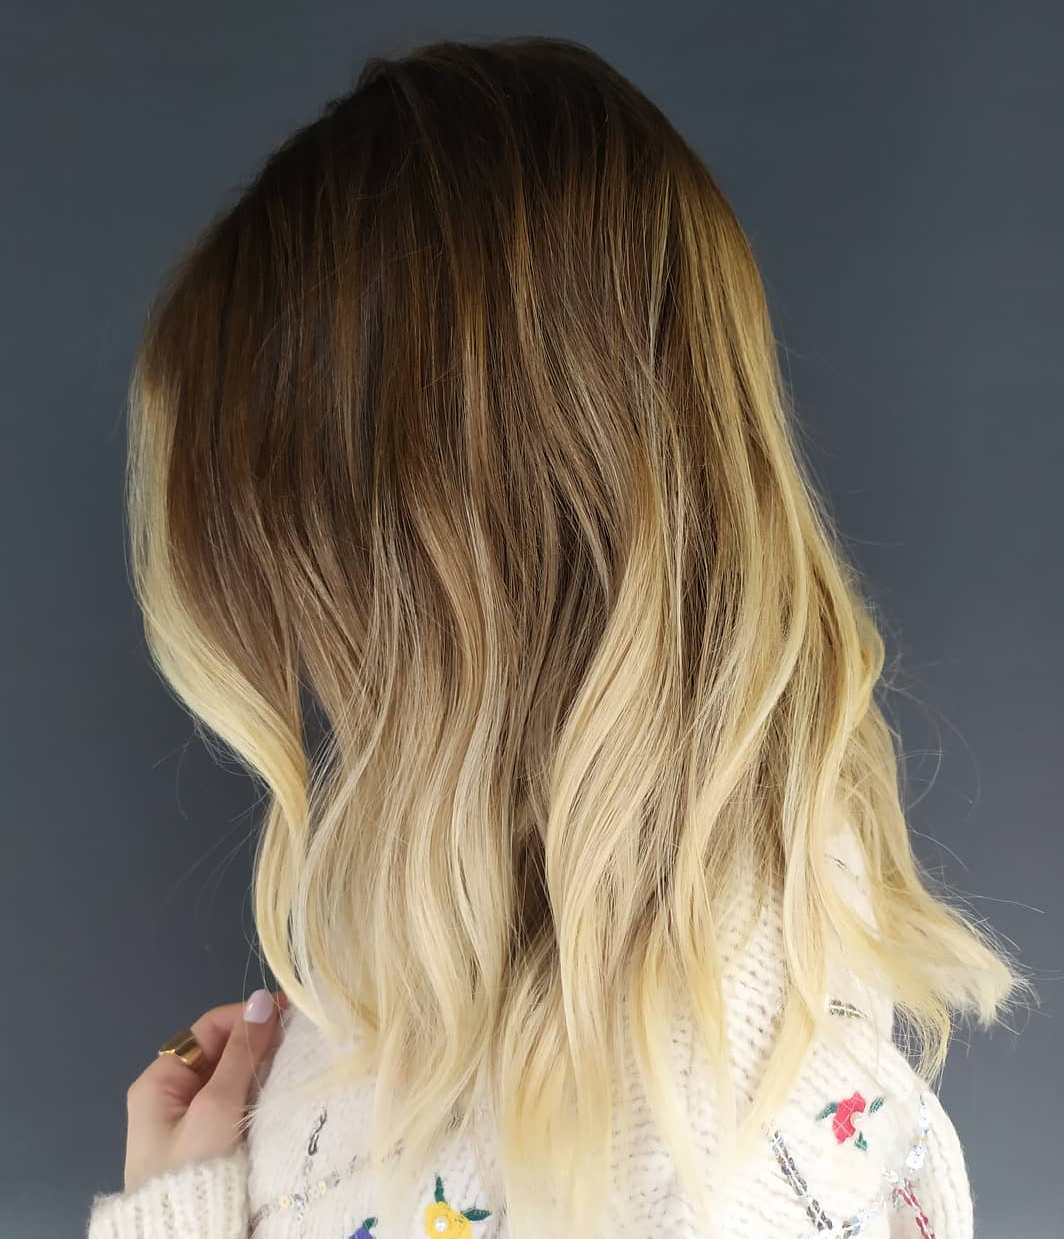 Blonde Ombre for Short-to-Medium Length Hair